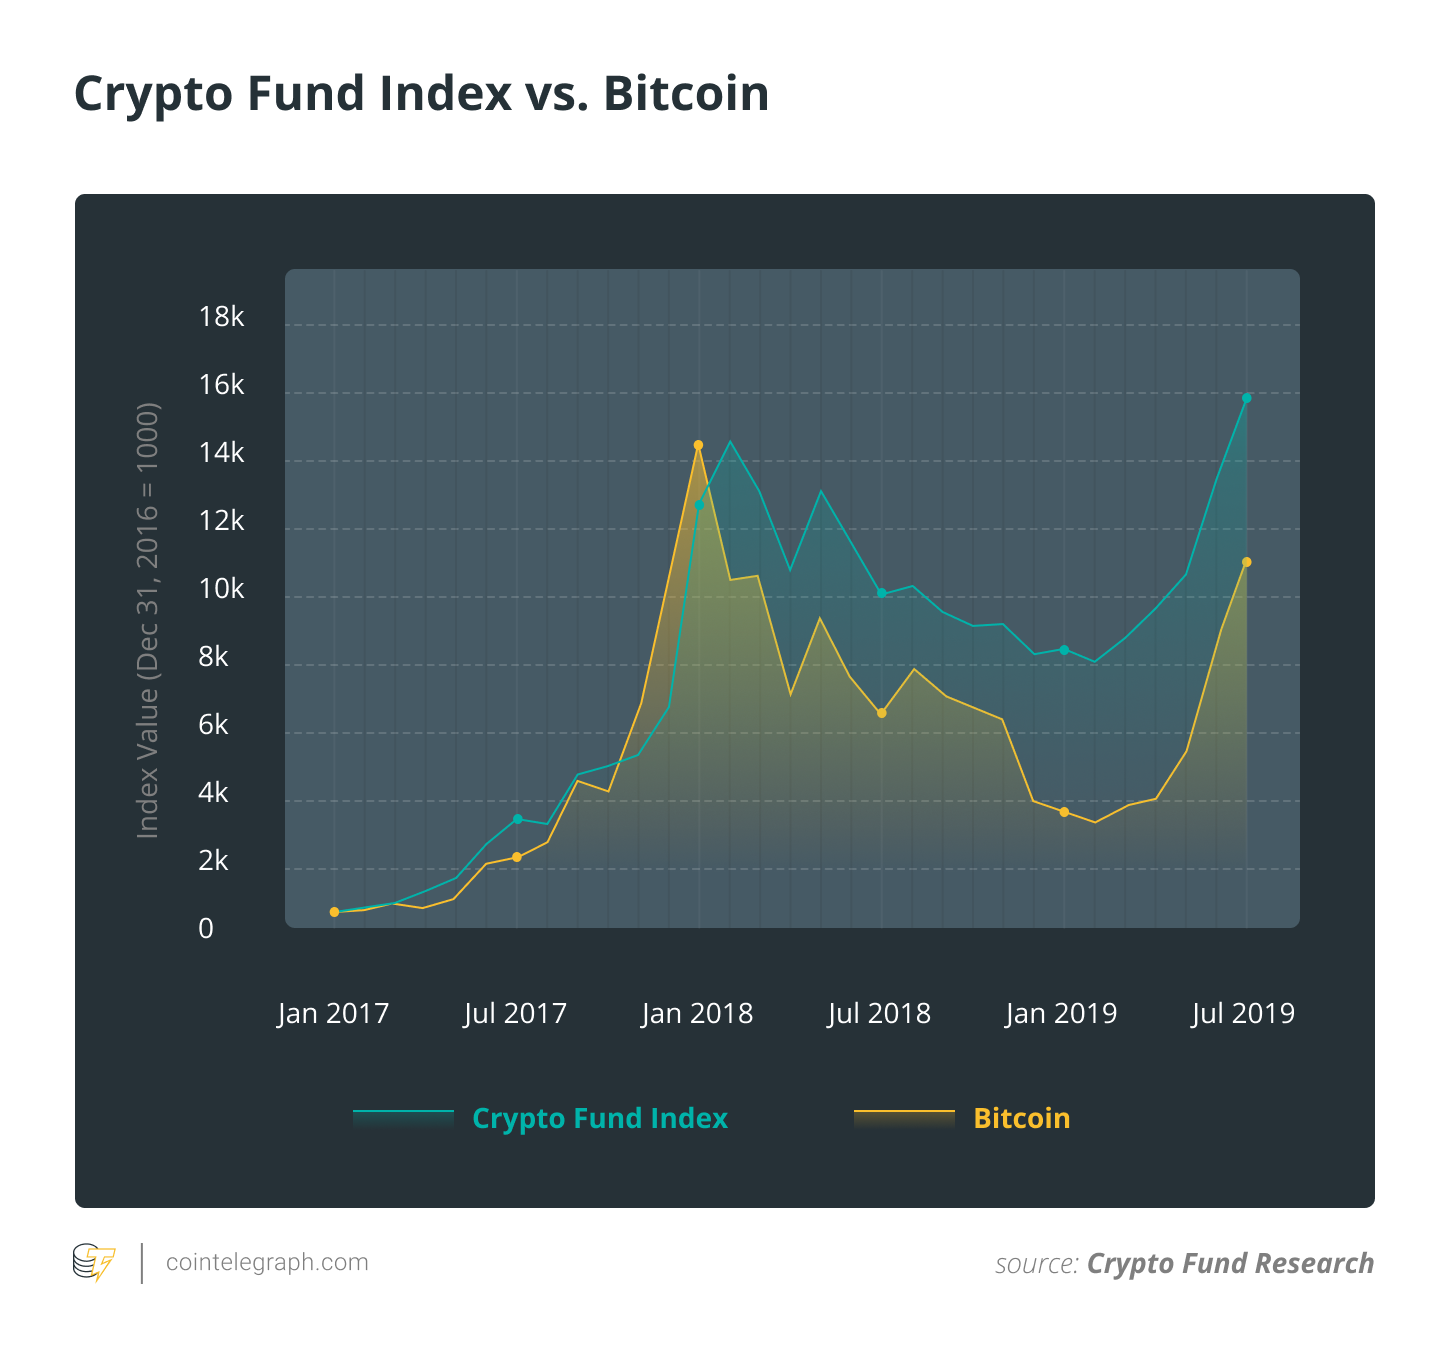 Crypto Fund Index vs. Bitcoin